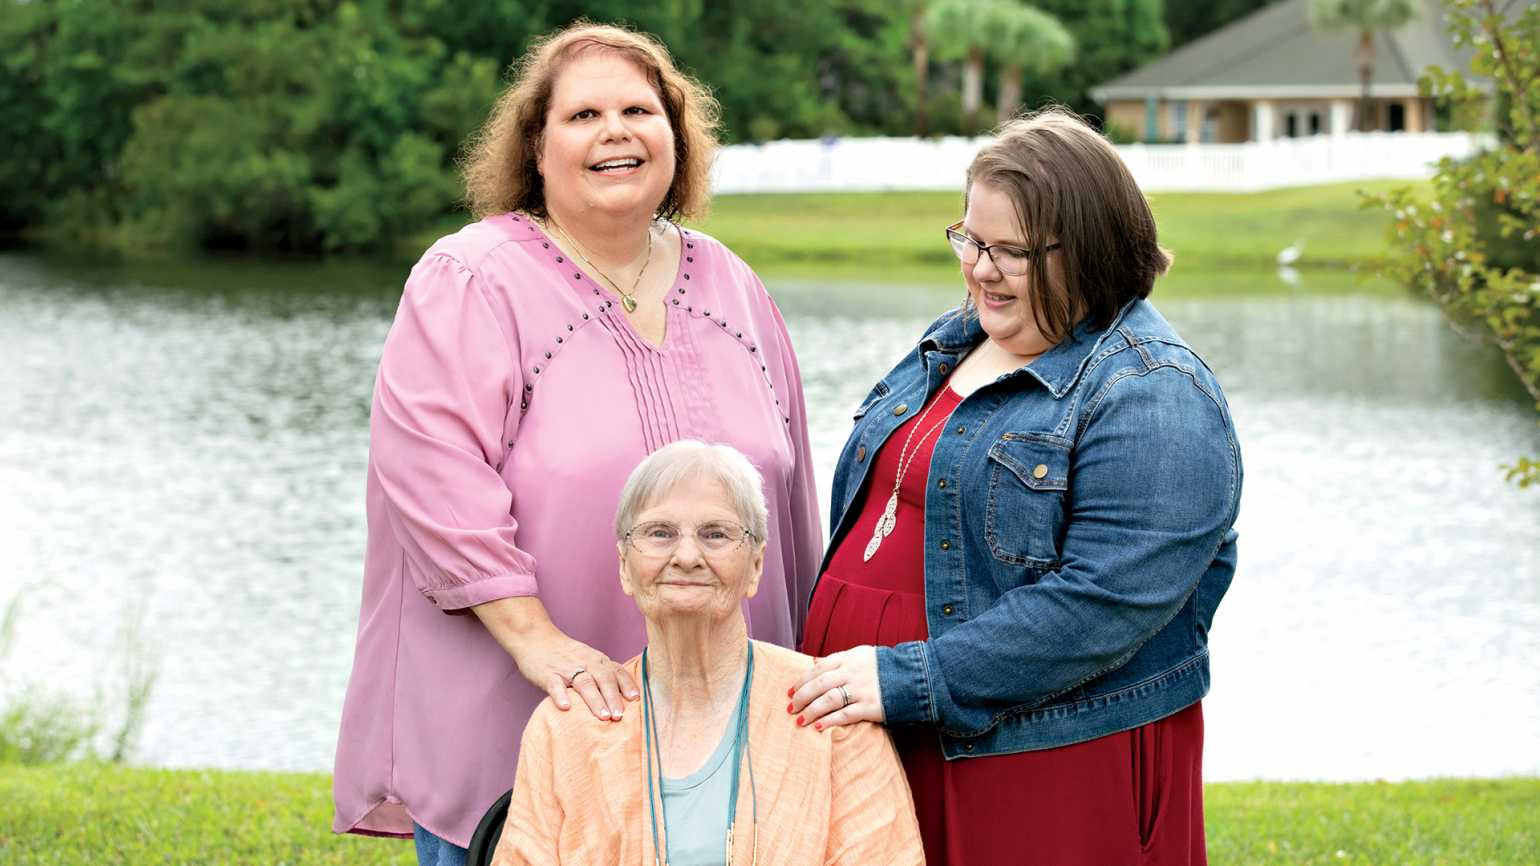 Lori Durham (left) with Allison and Betty; photo by Charlotte Kesl